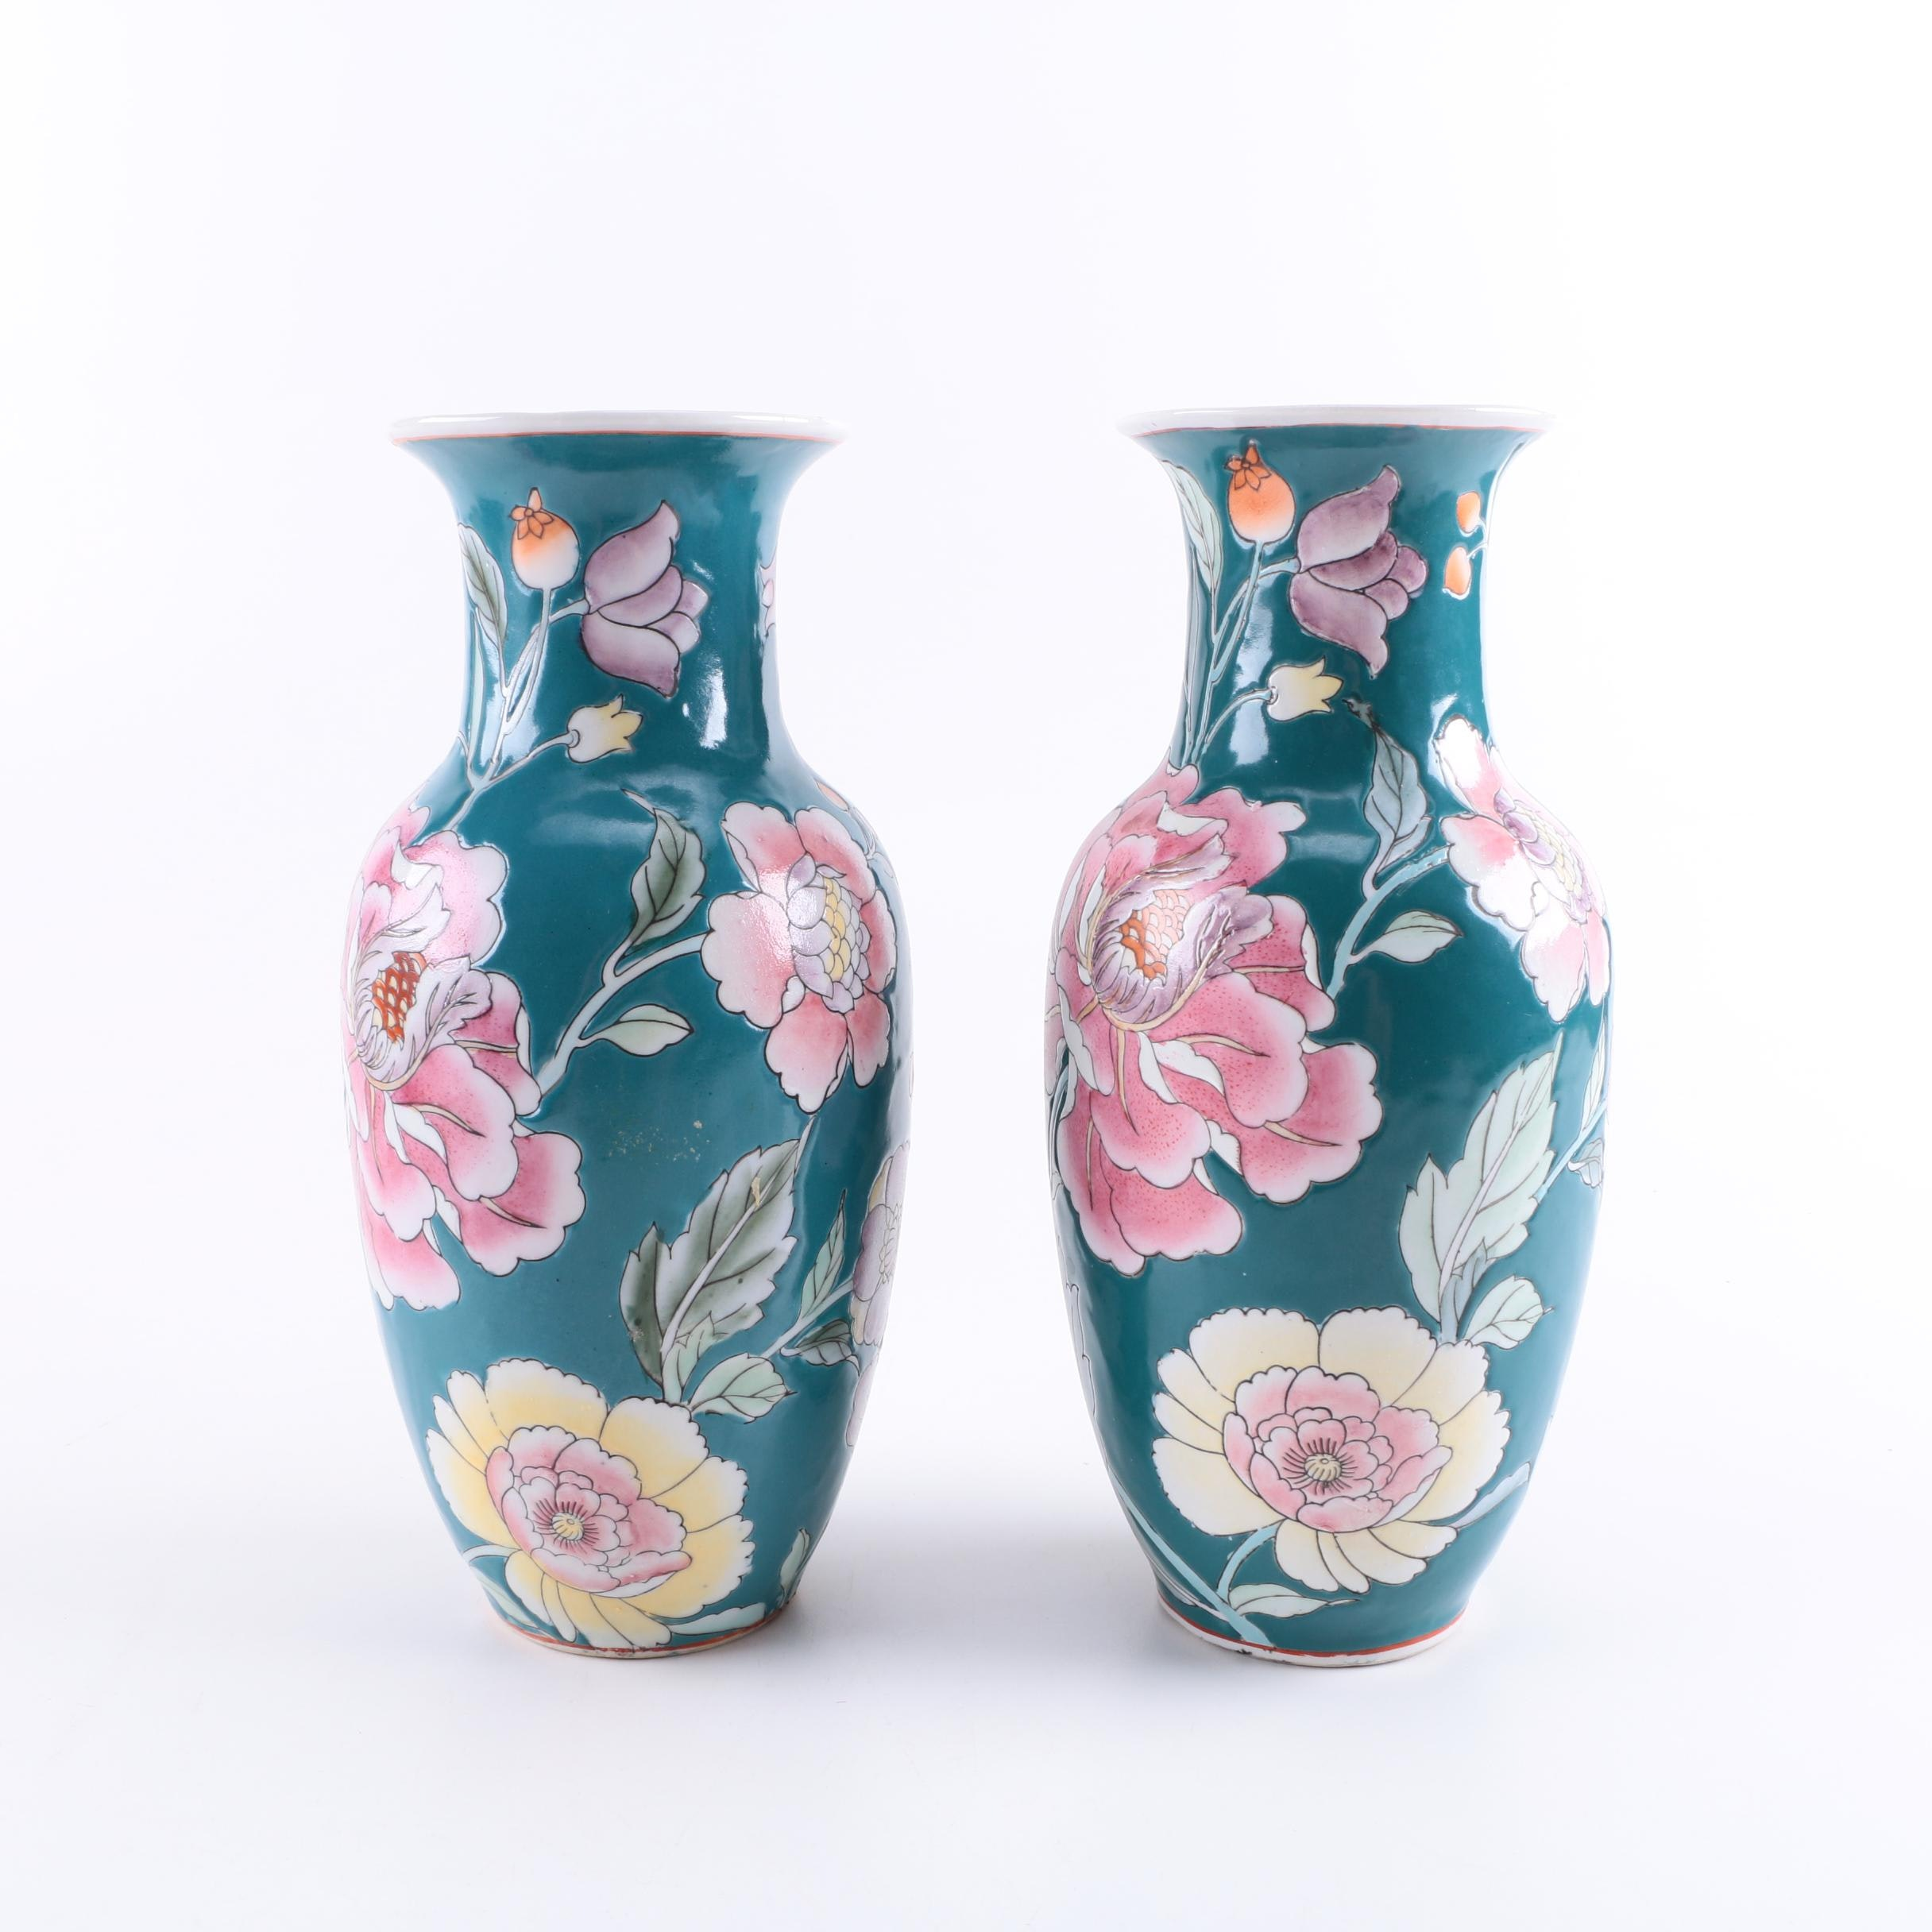 Pair of Chinese Decorative Vases